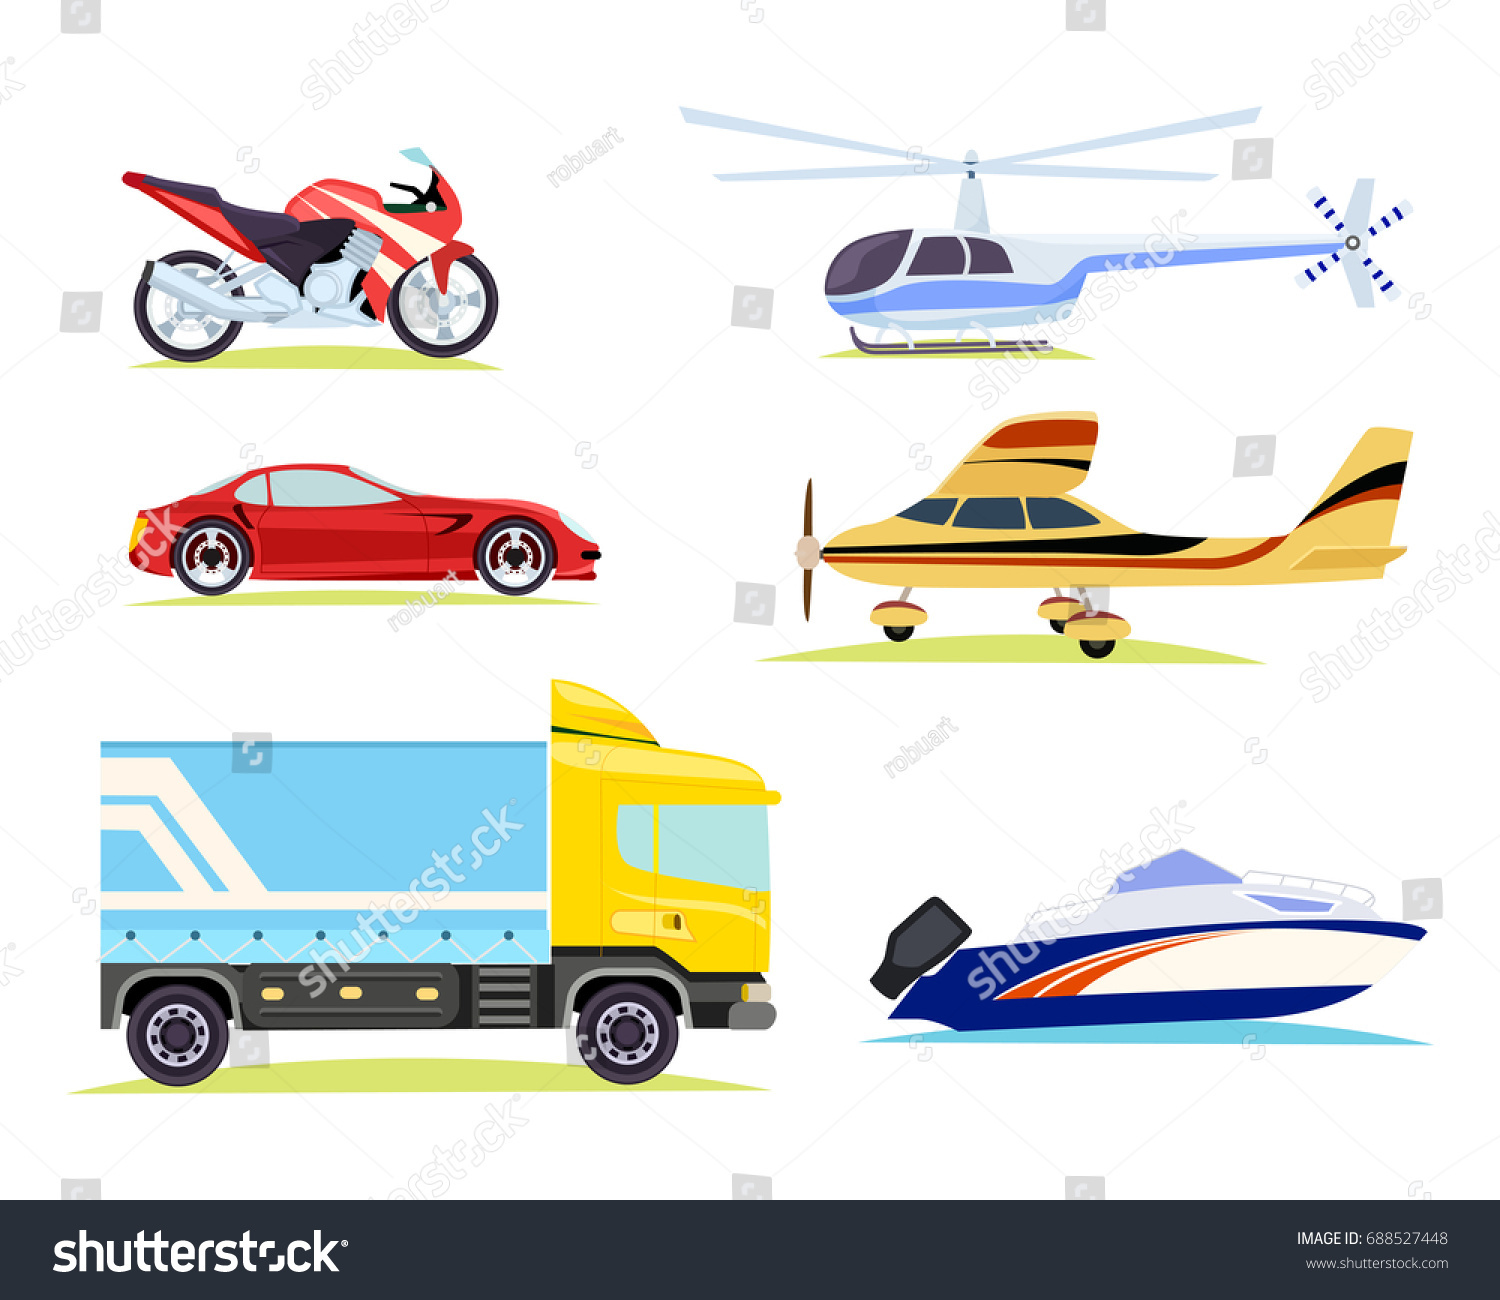 Collection Different Means Transportation Cartoon Style